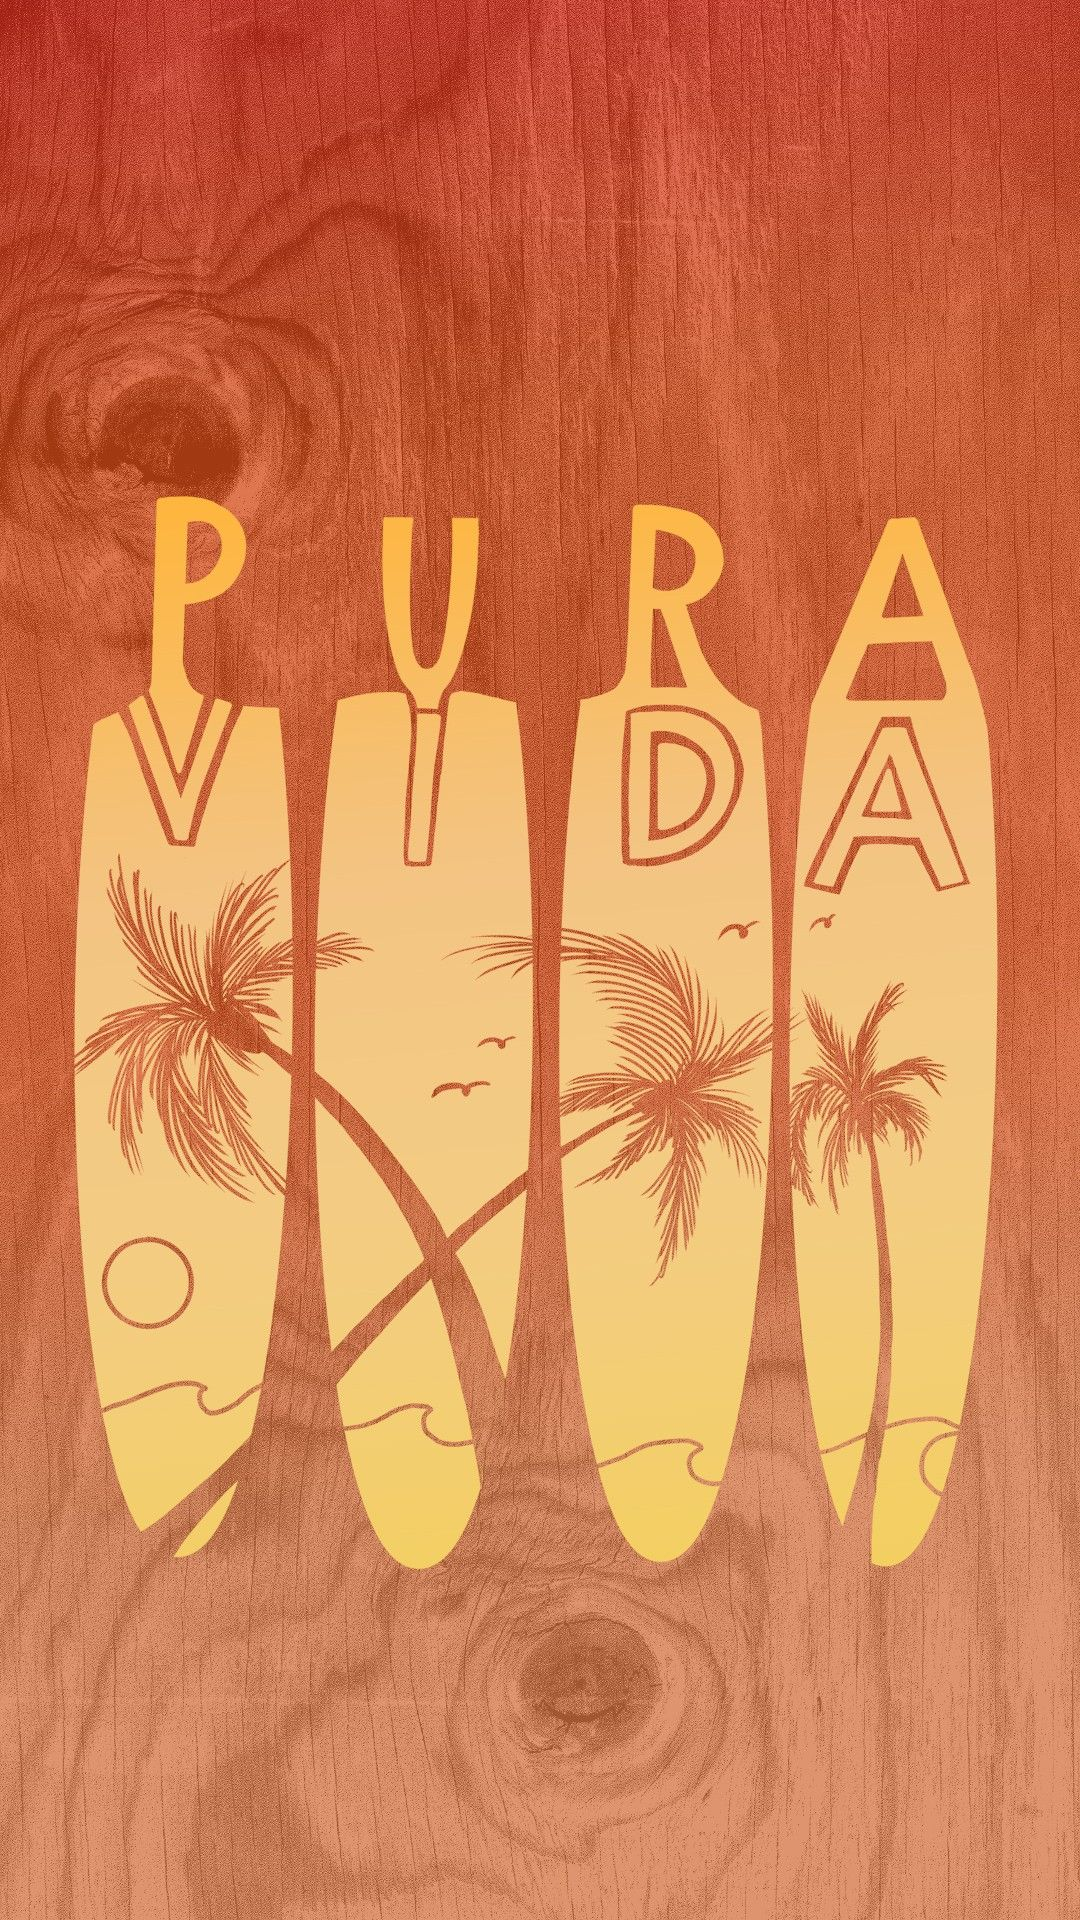 Pin by Alexia on Backgrounds Vintage surf, Surfing